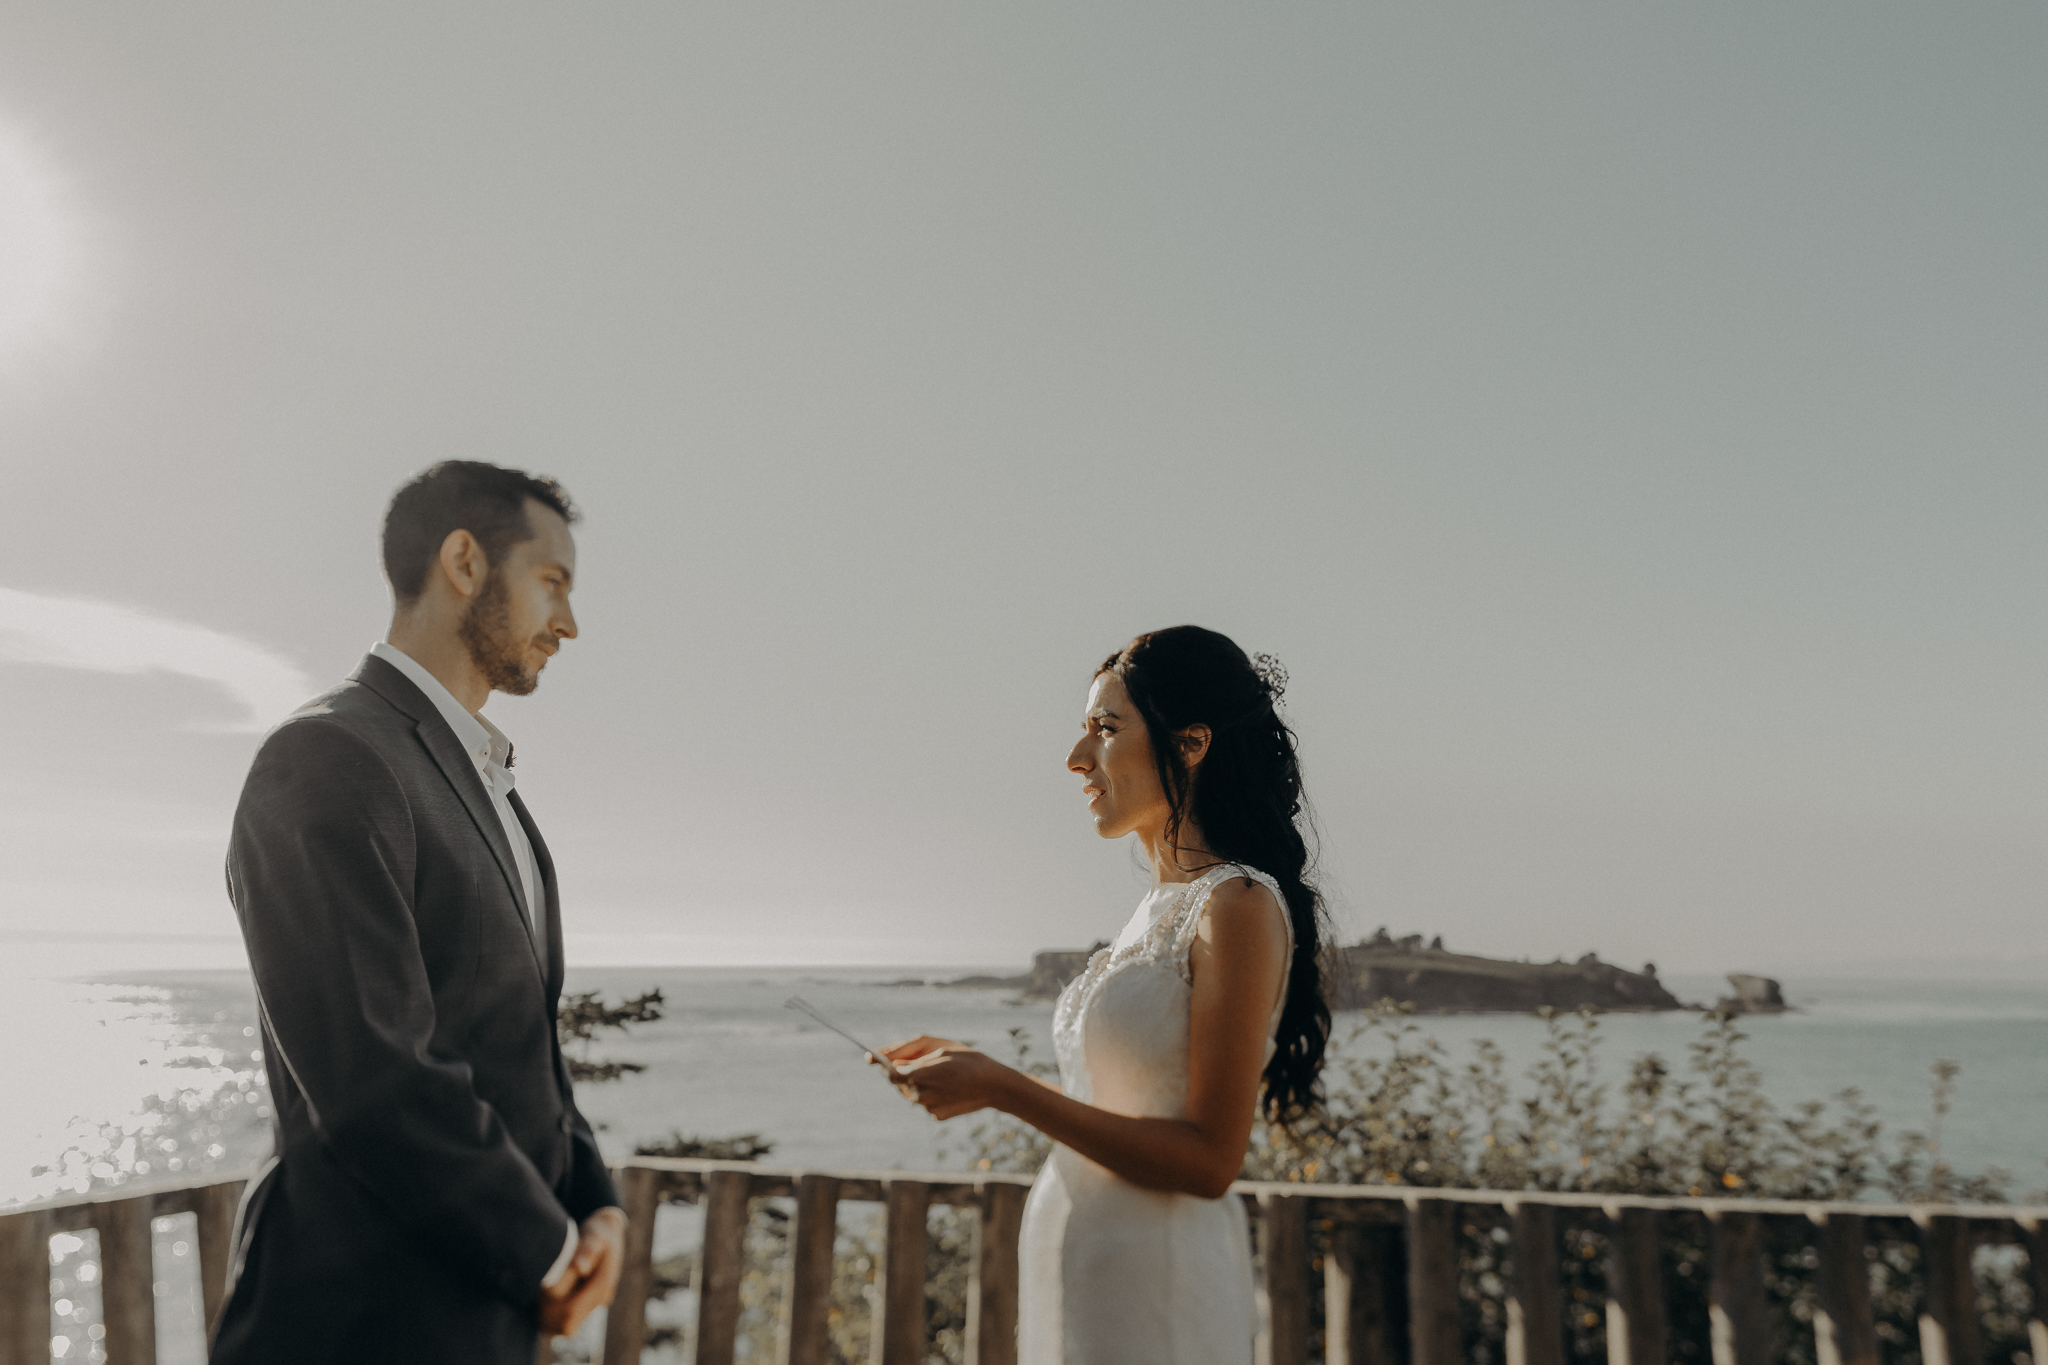 Isaiah + Taylor Photography - Cape Flattery Elopement, Olympia National Forest Wedding Photographer-052.jpg